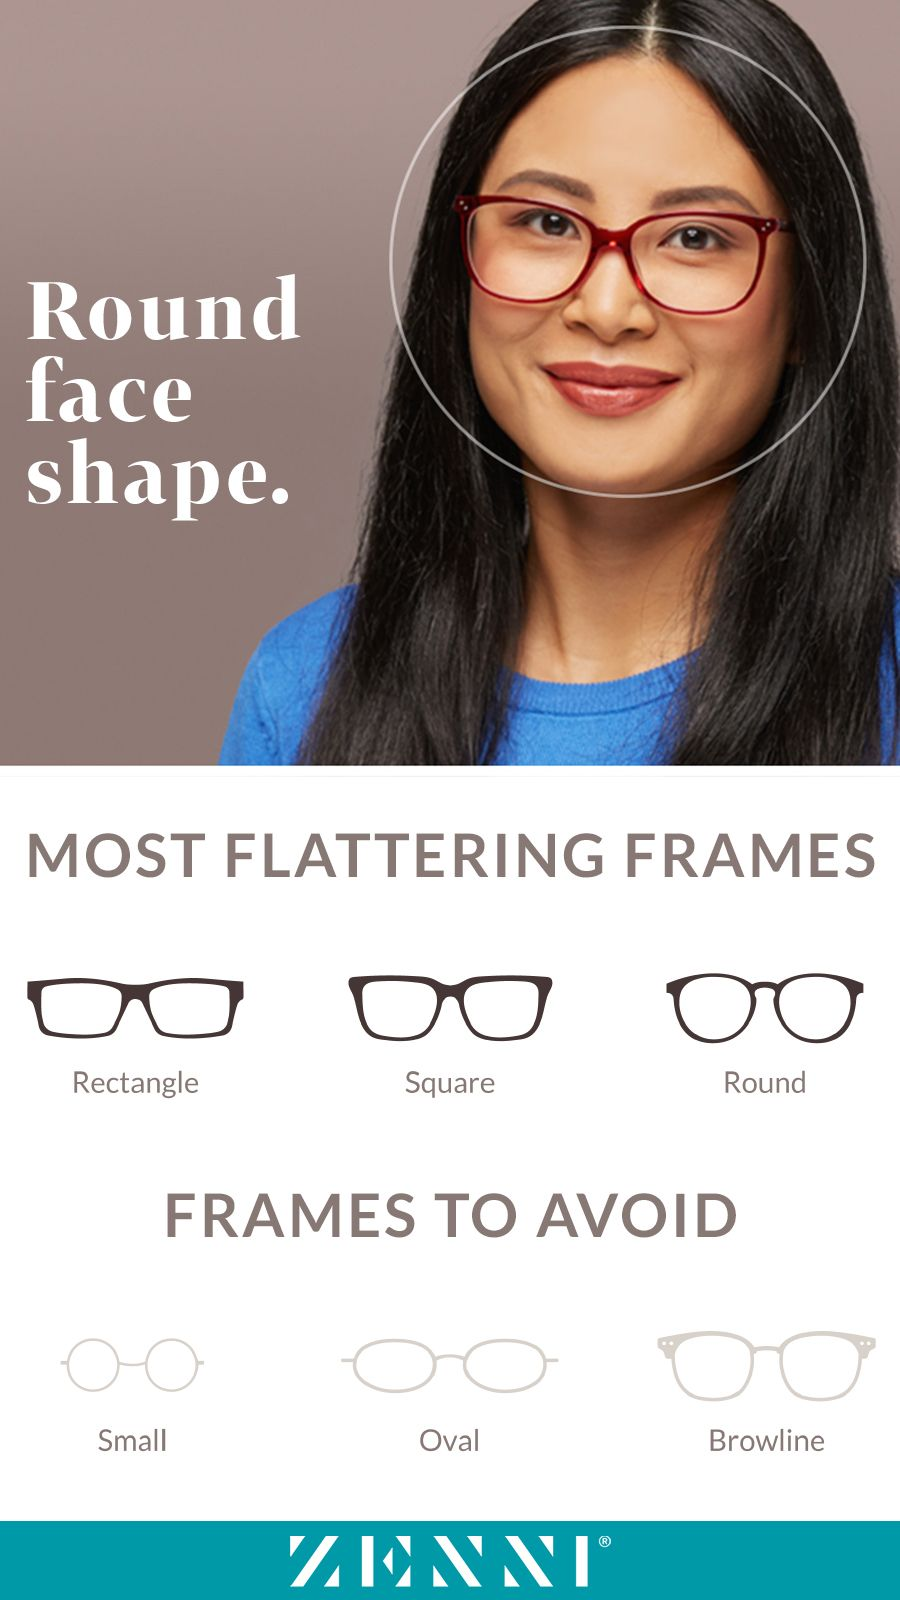 295dd79aa5d Find the most flattering frames for all face shapes! Which shape are you